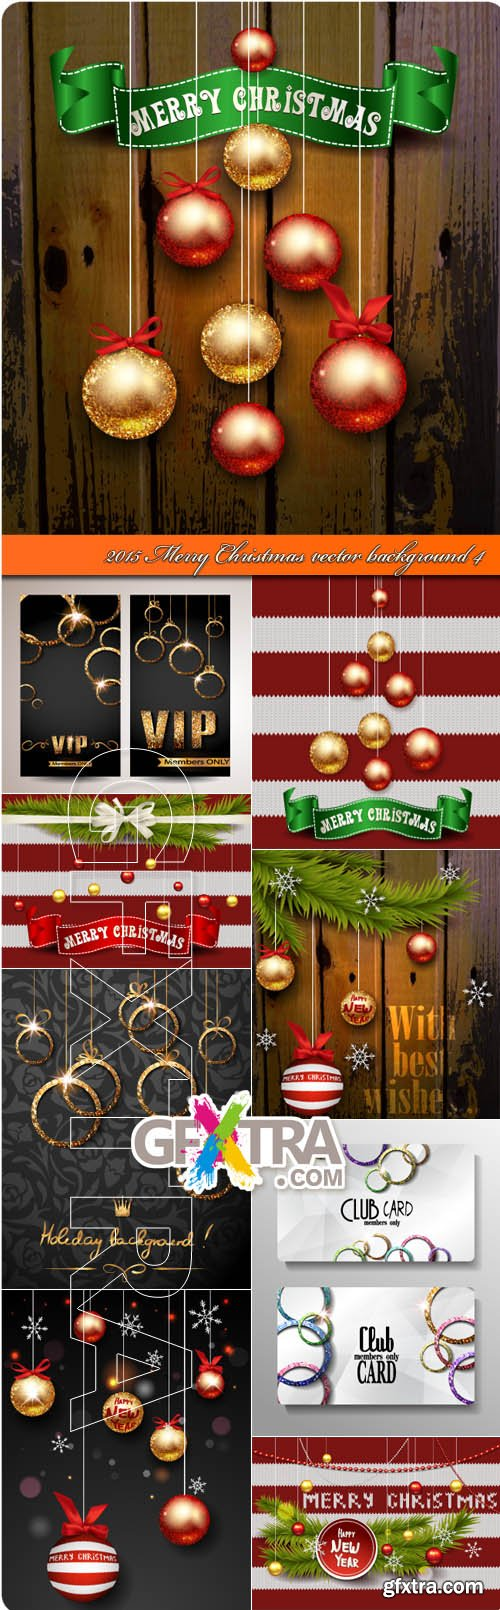 2015 Merry Christmas vector background 4